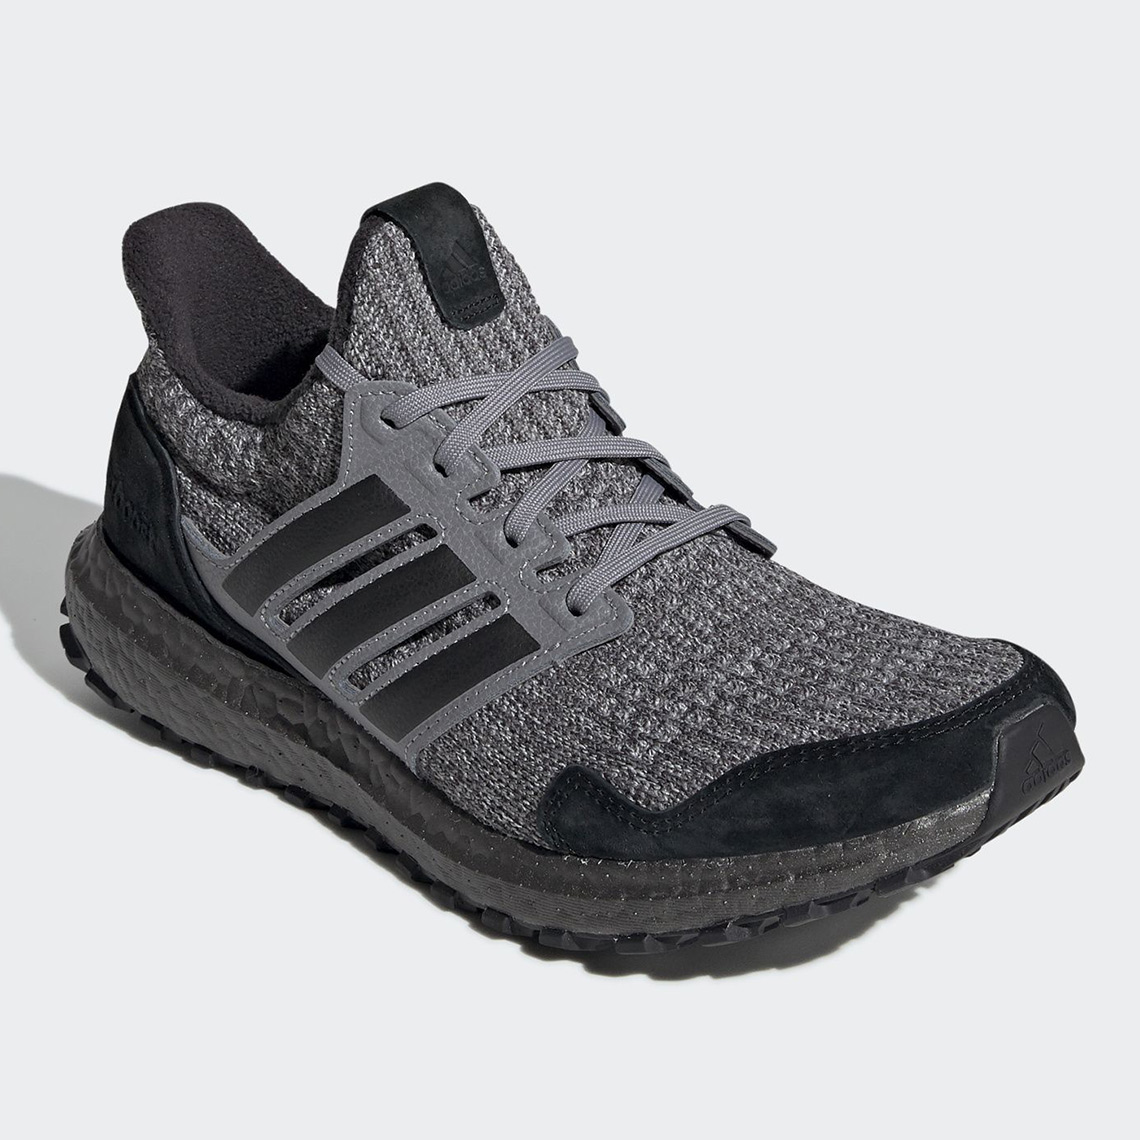 adidas-ultra-boost-game-of-thrones-house-stark-EE3706-11.jpg